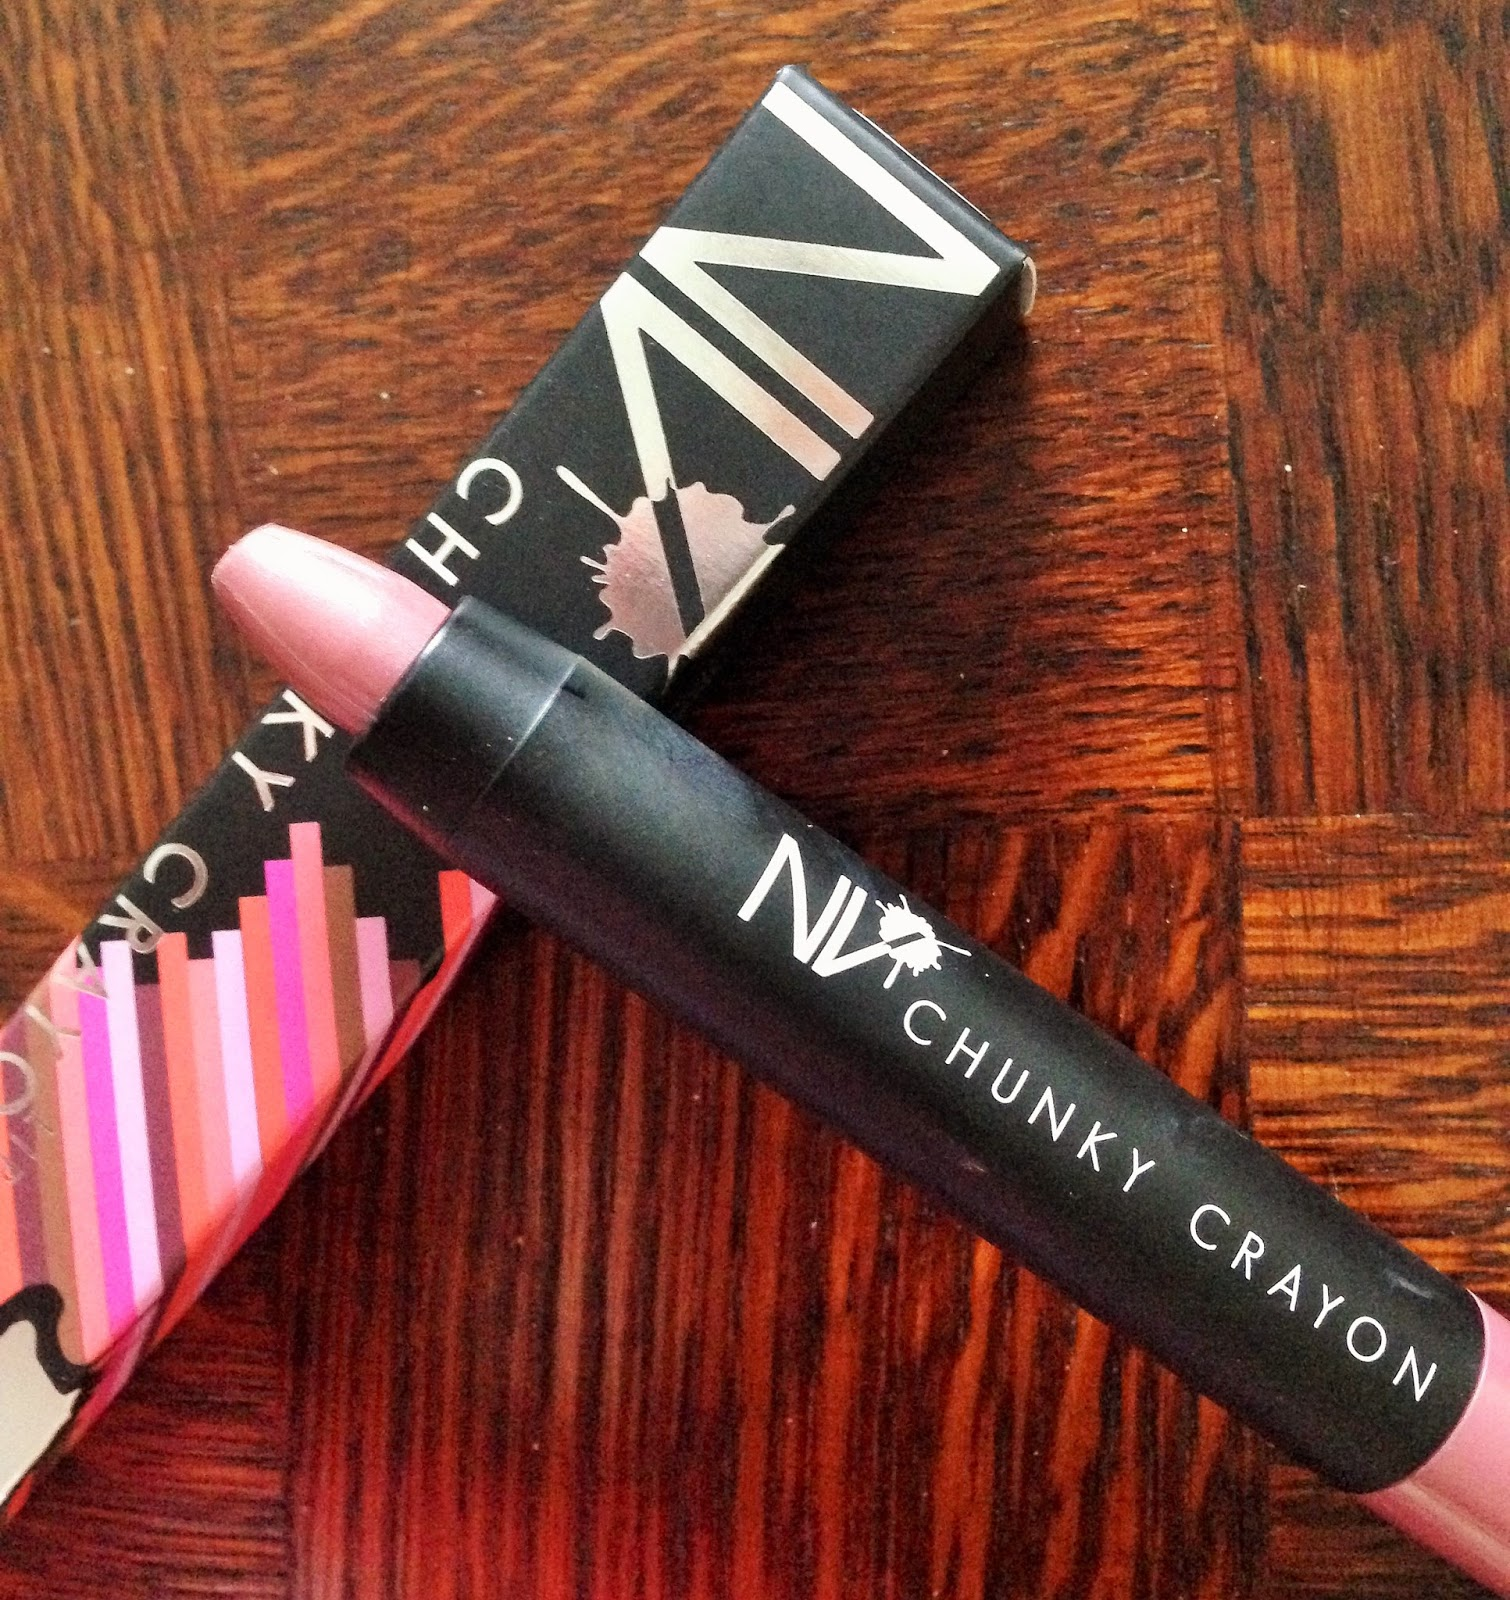 NV Colour Cosmetics Chunky Lip Crayon in Mocha Review Swatch